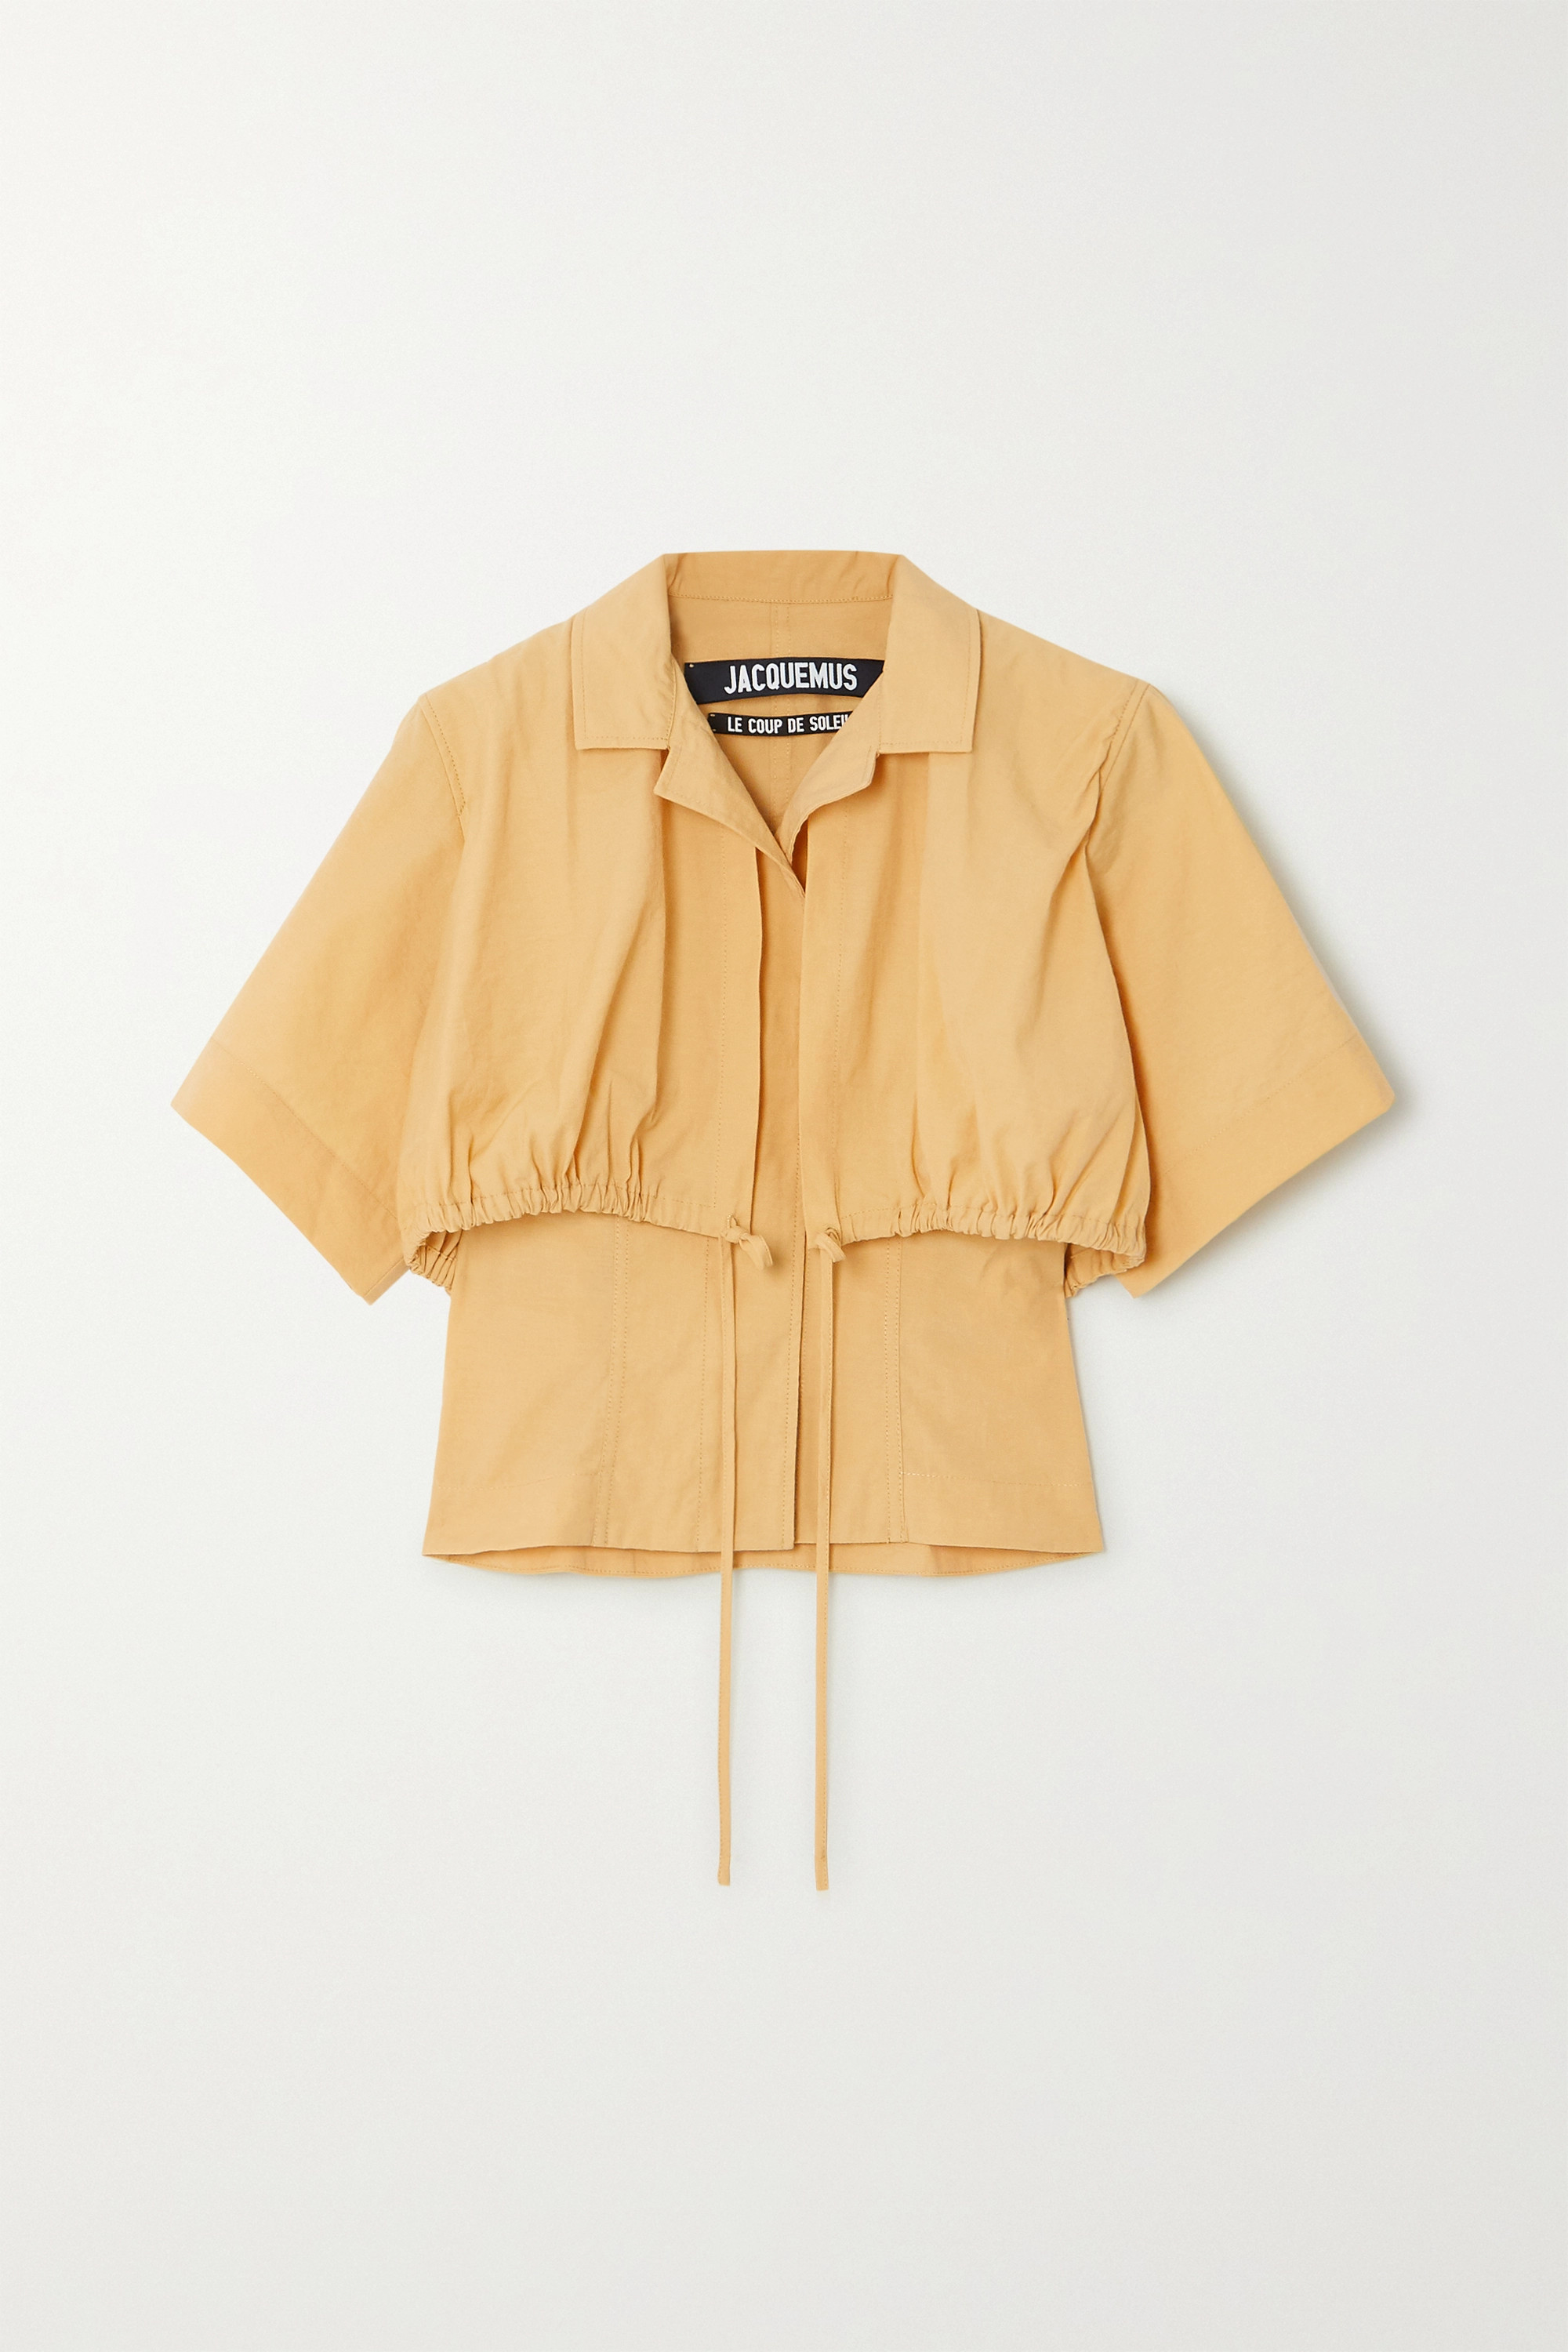 Jacquemus Mimosa gathered poplin top